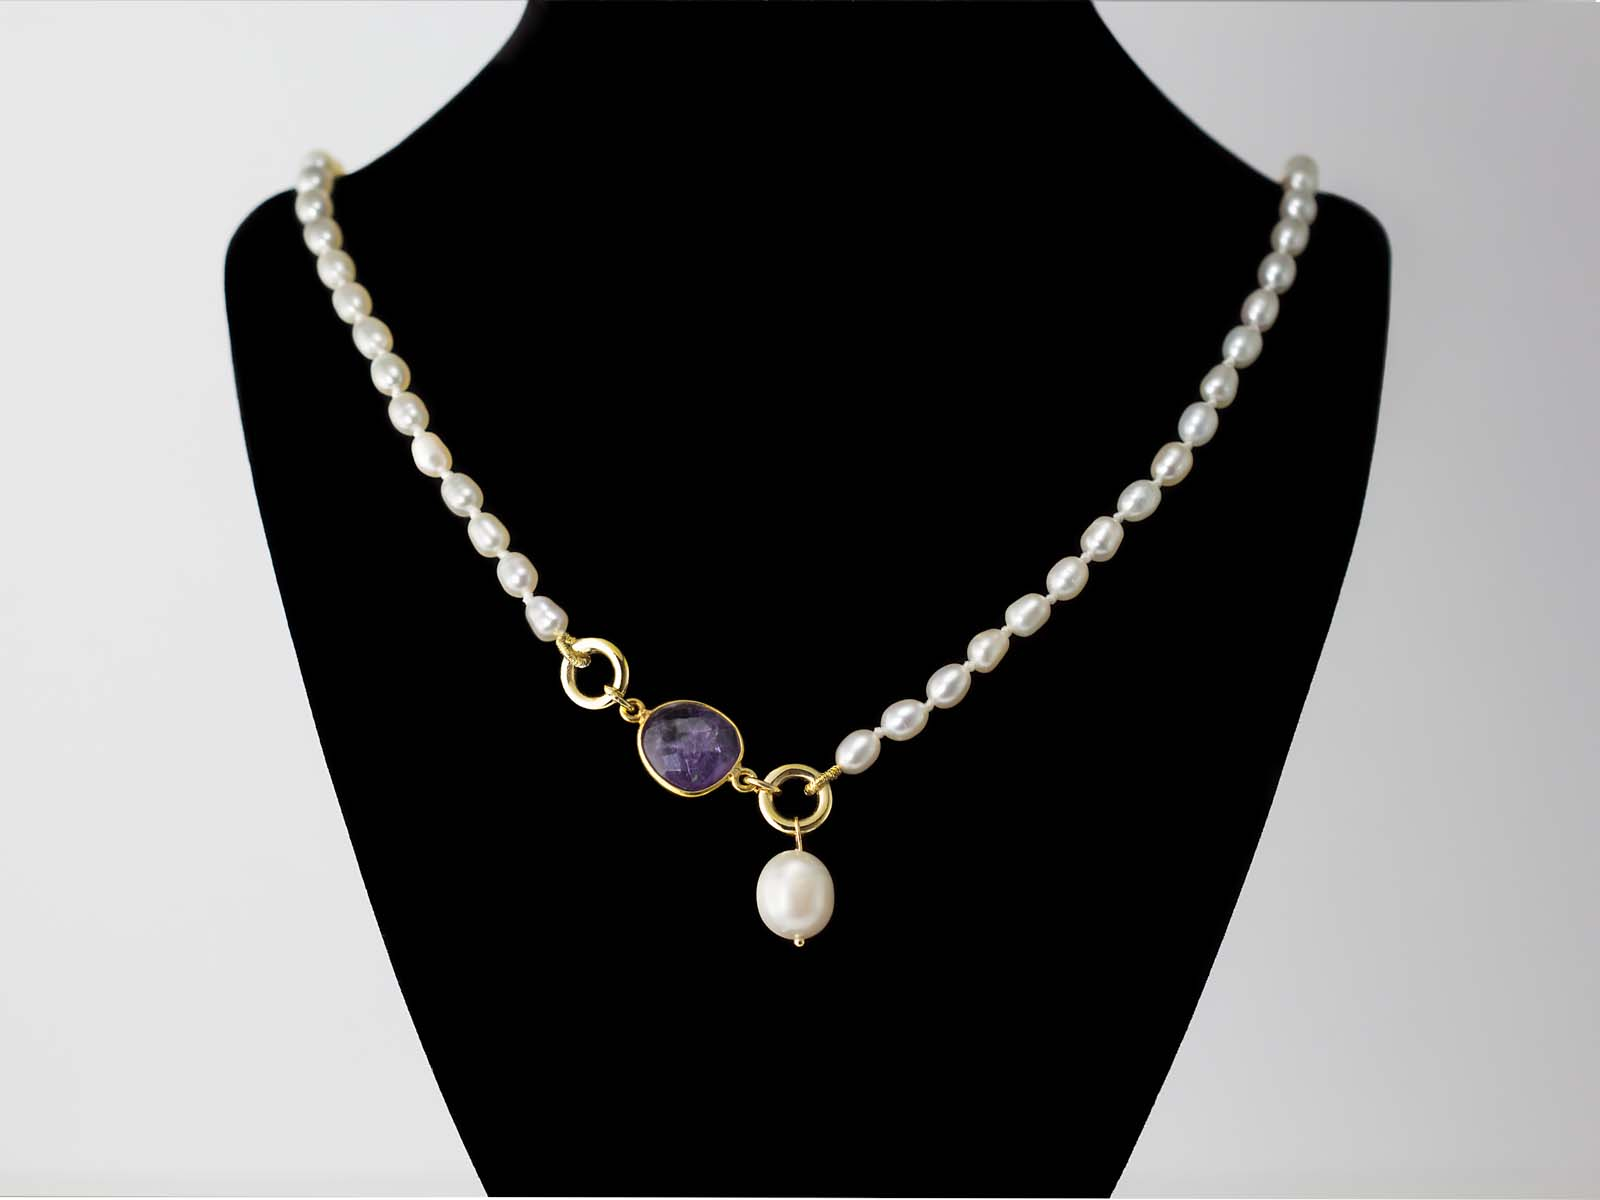 Elegant Necklace From Pearls With Facetted Amethyst In